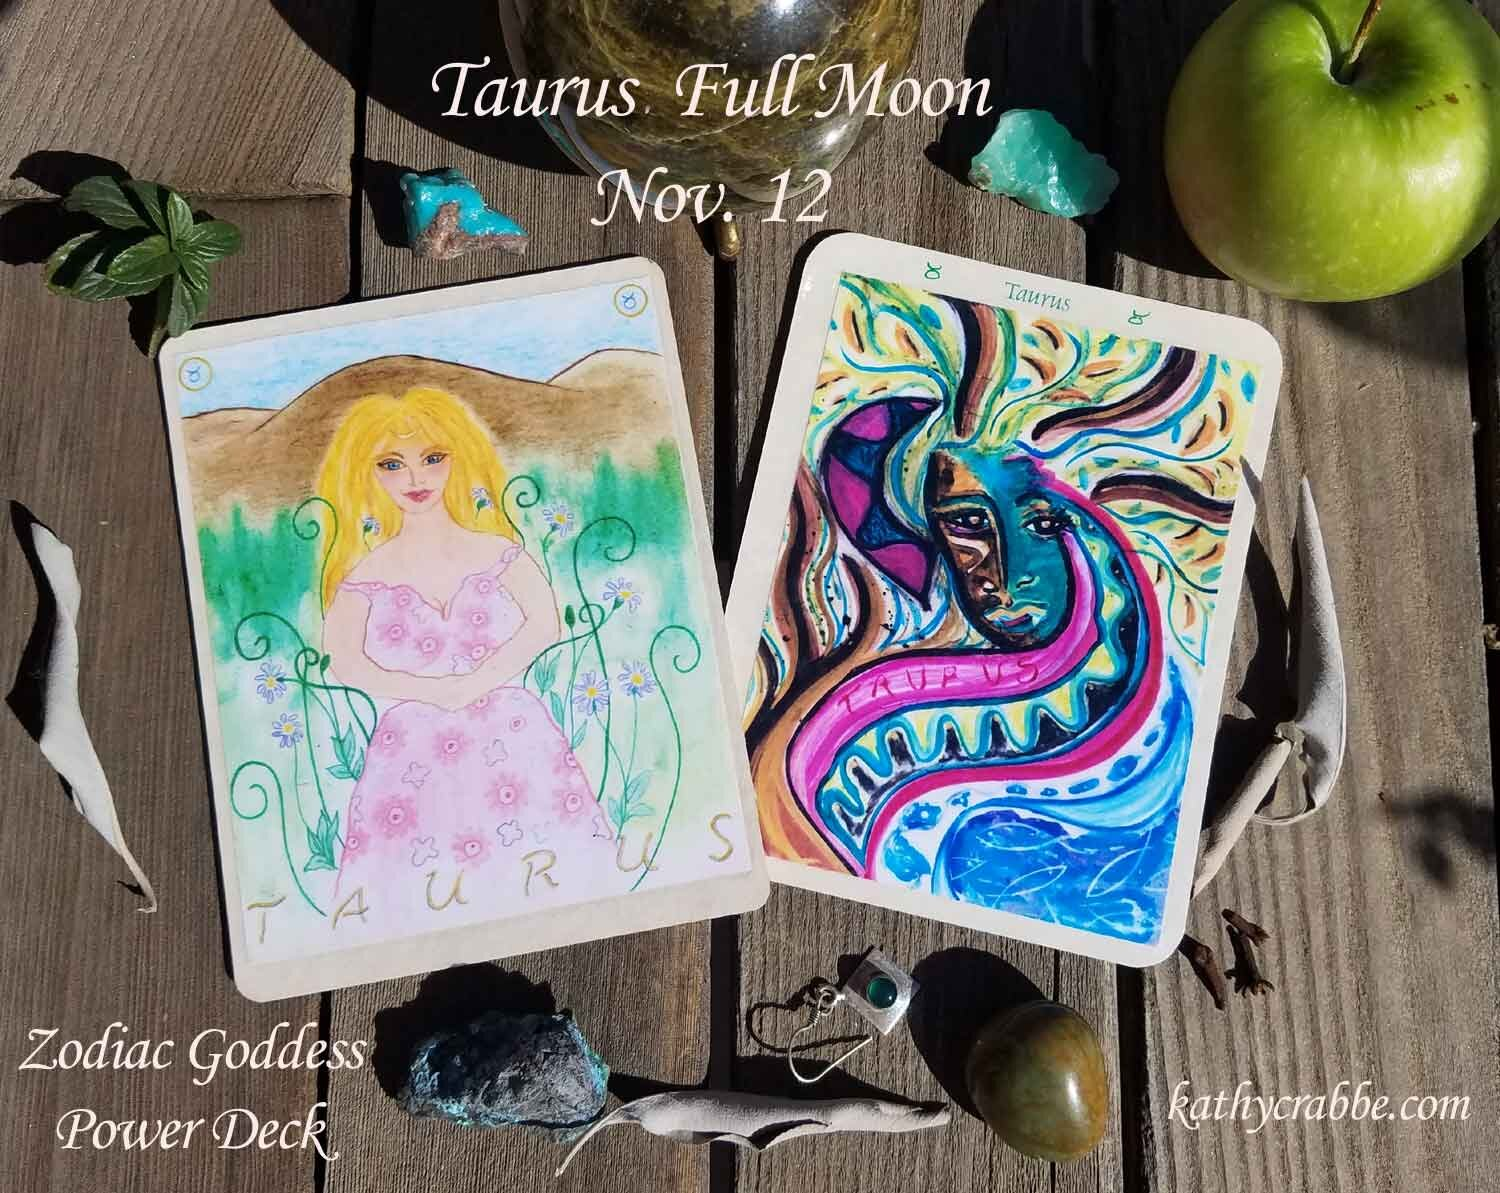 Taurus-Full-Moon